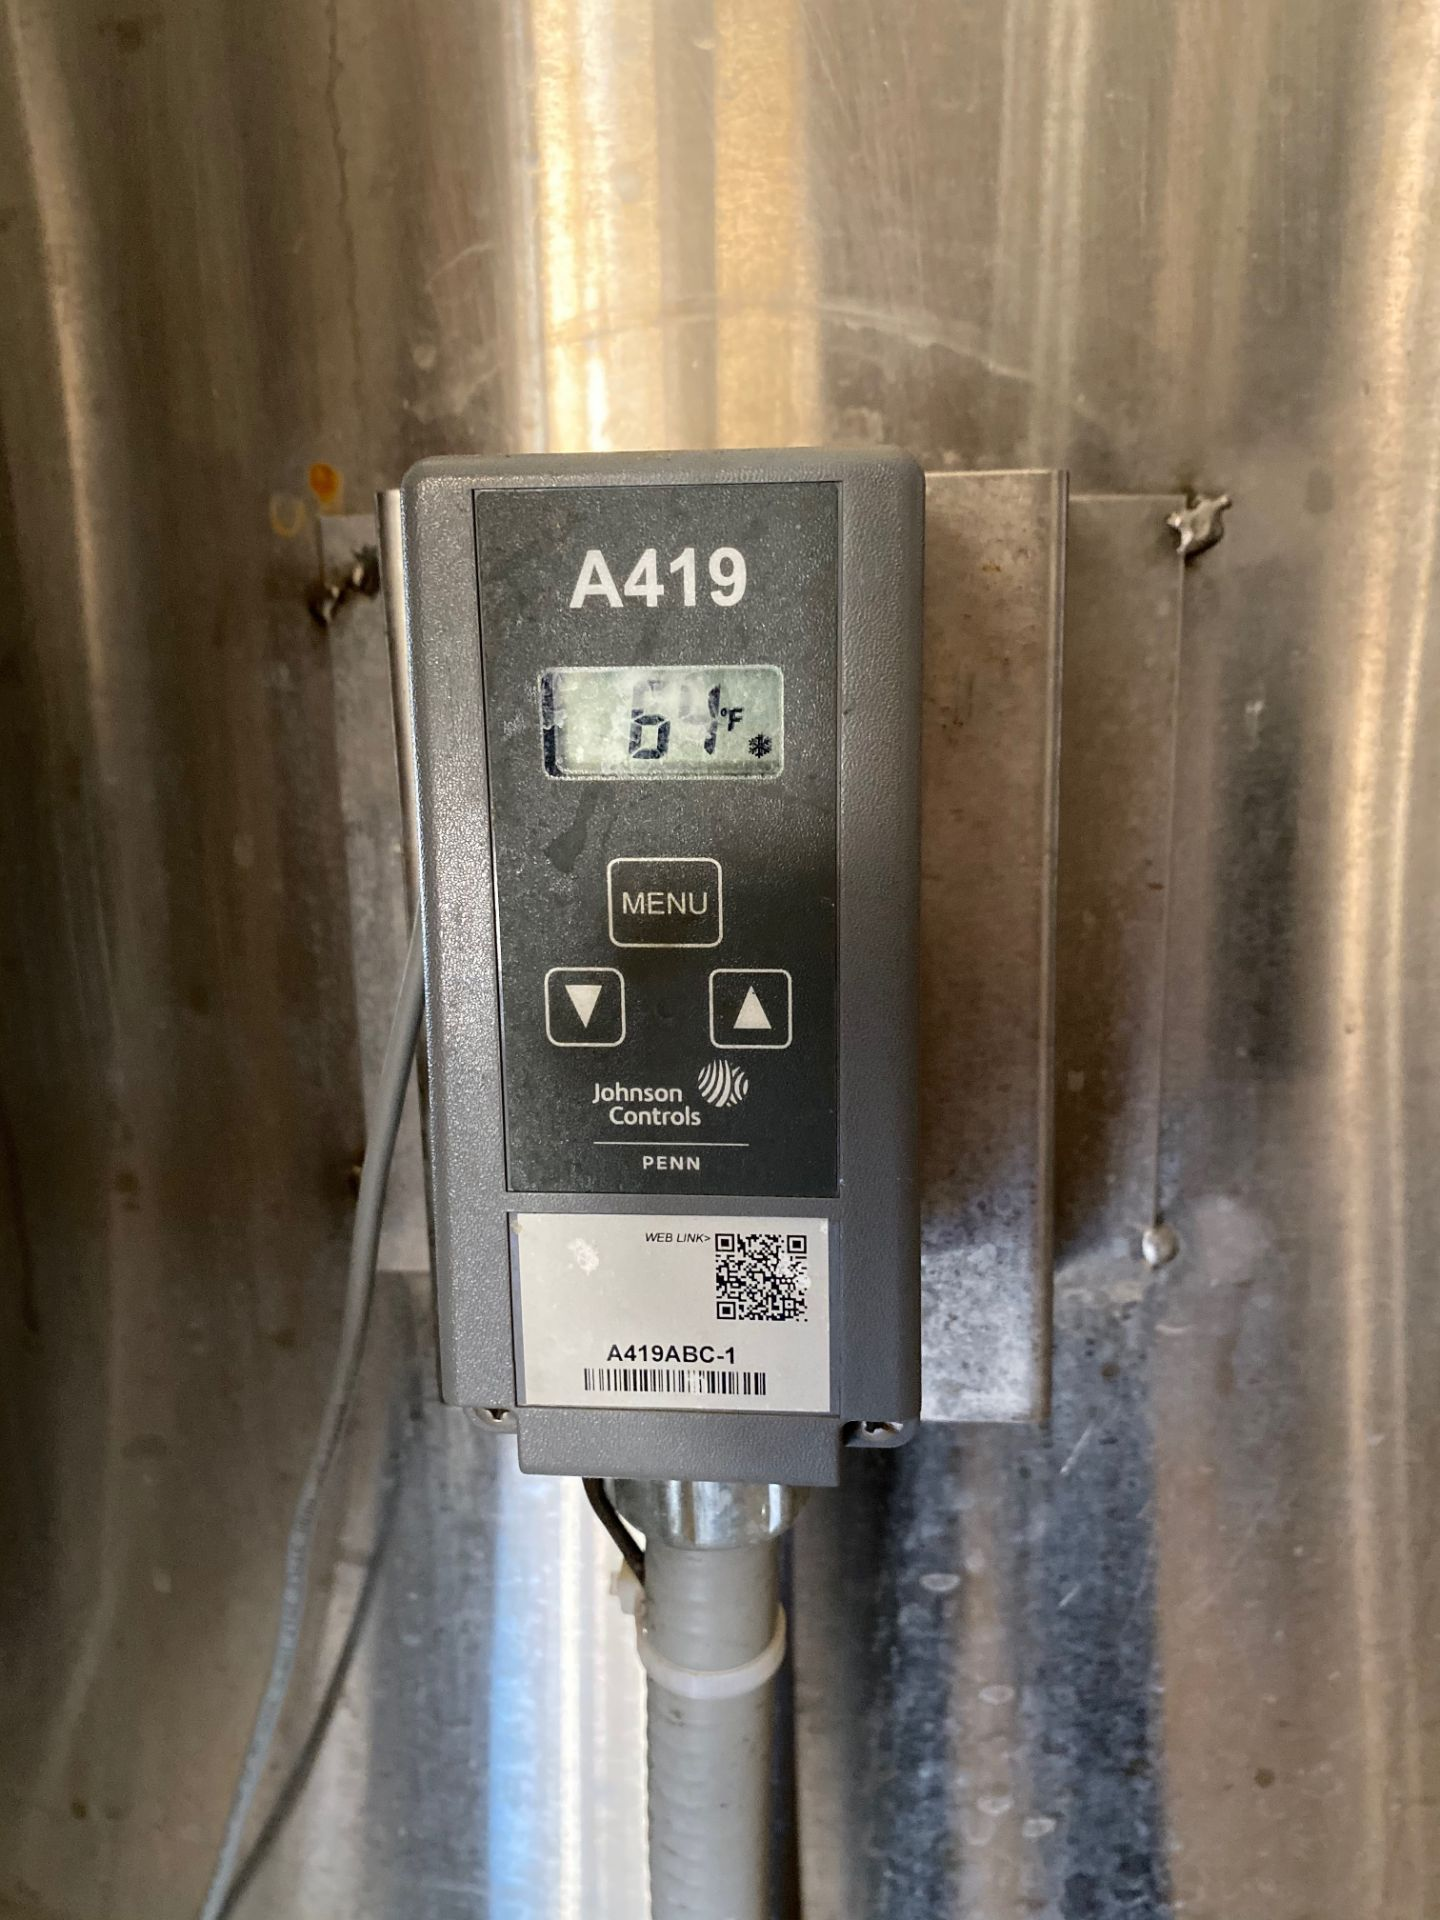 Lot 7 - 2014 Criveller 20 BBL Fermentation Vessel, 304 Stainless Steel, Sidew | Sub to Bulk | Rig Fee: $500